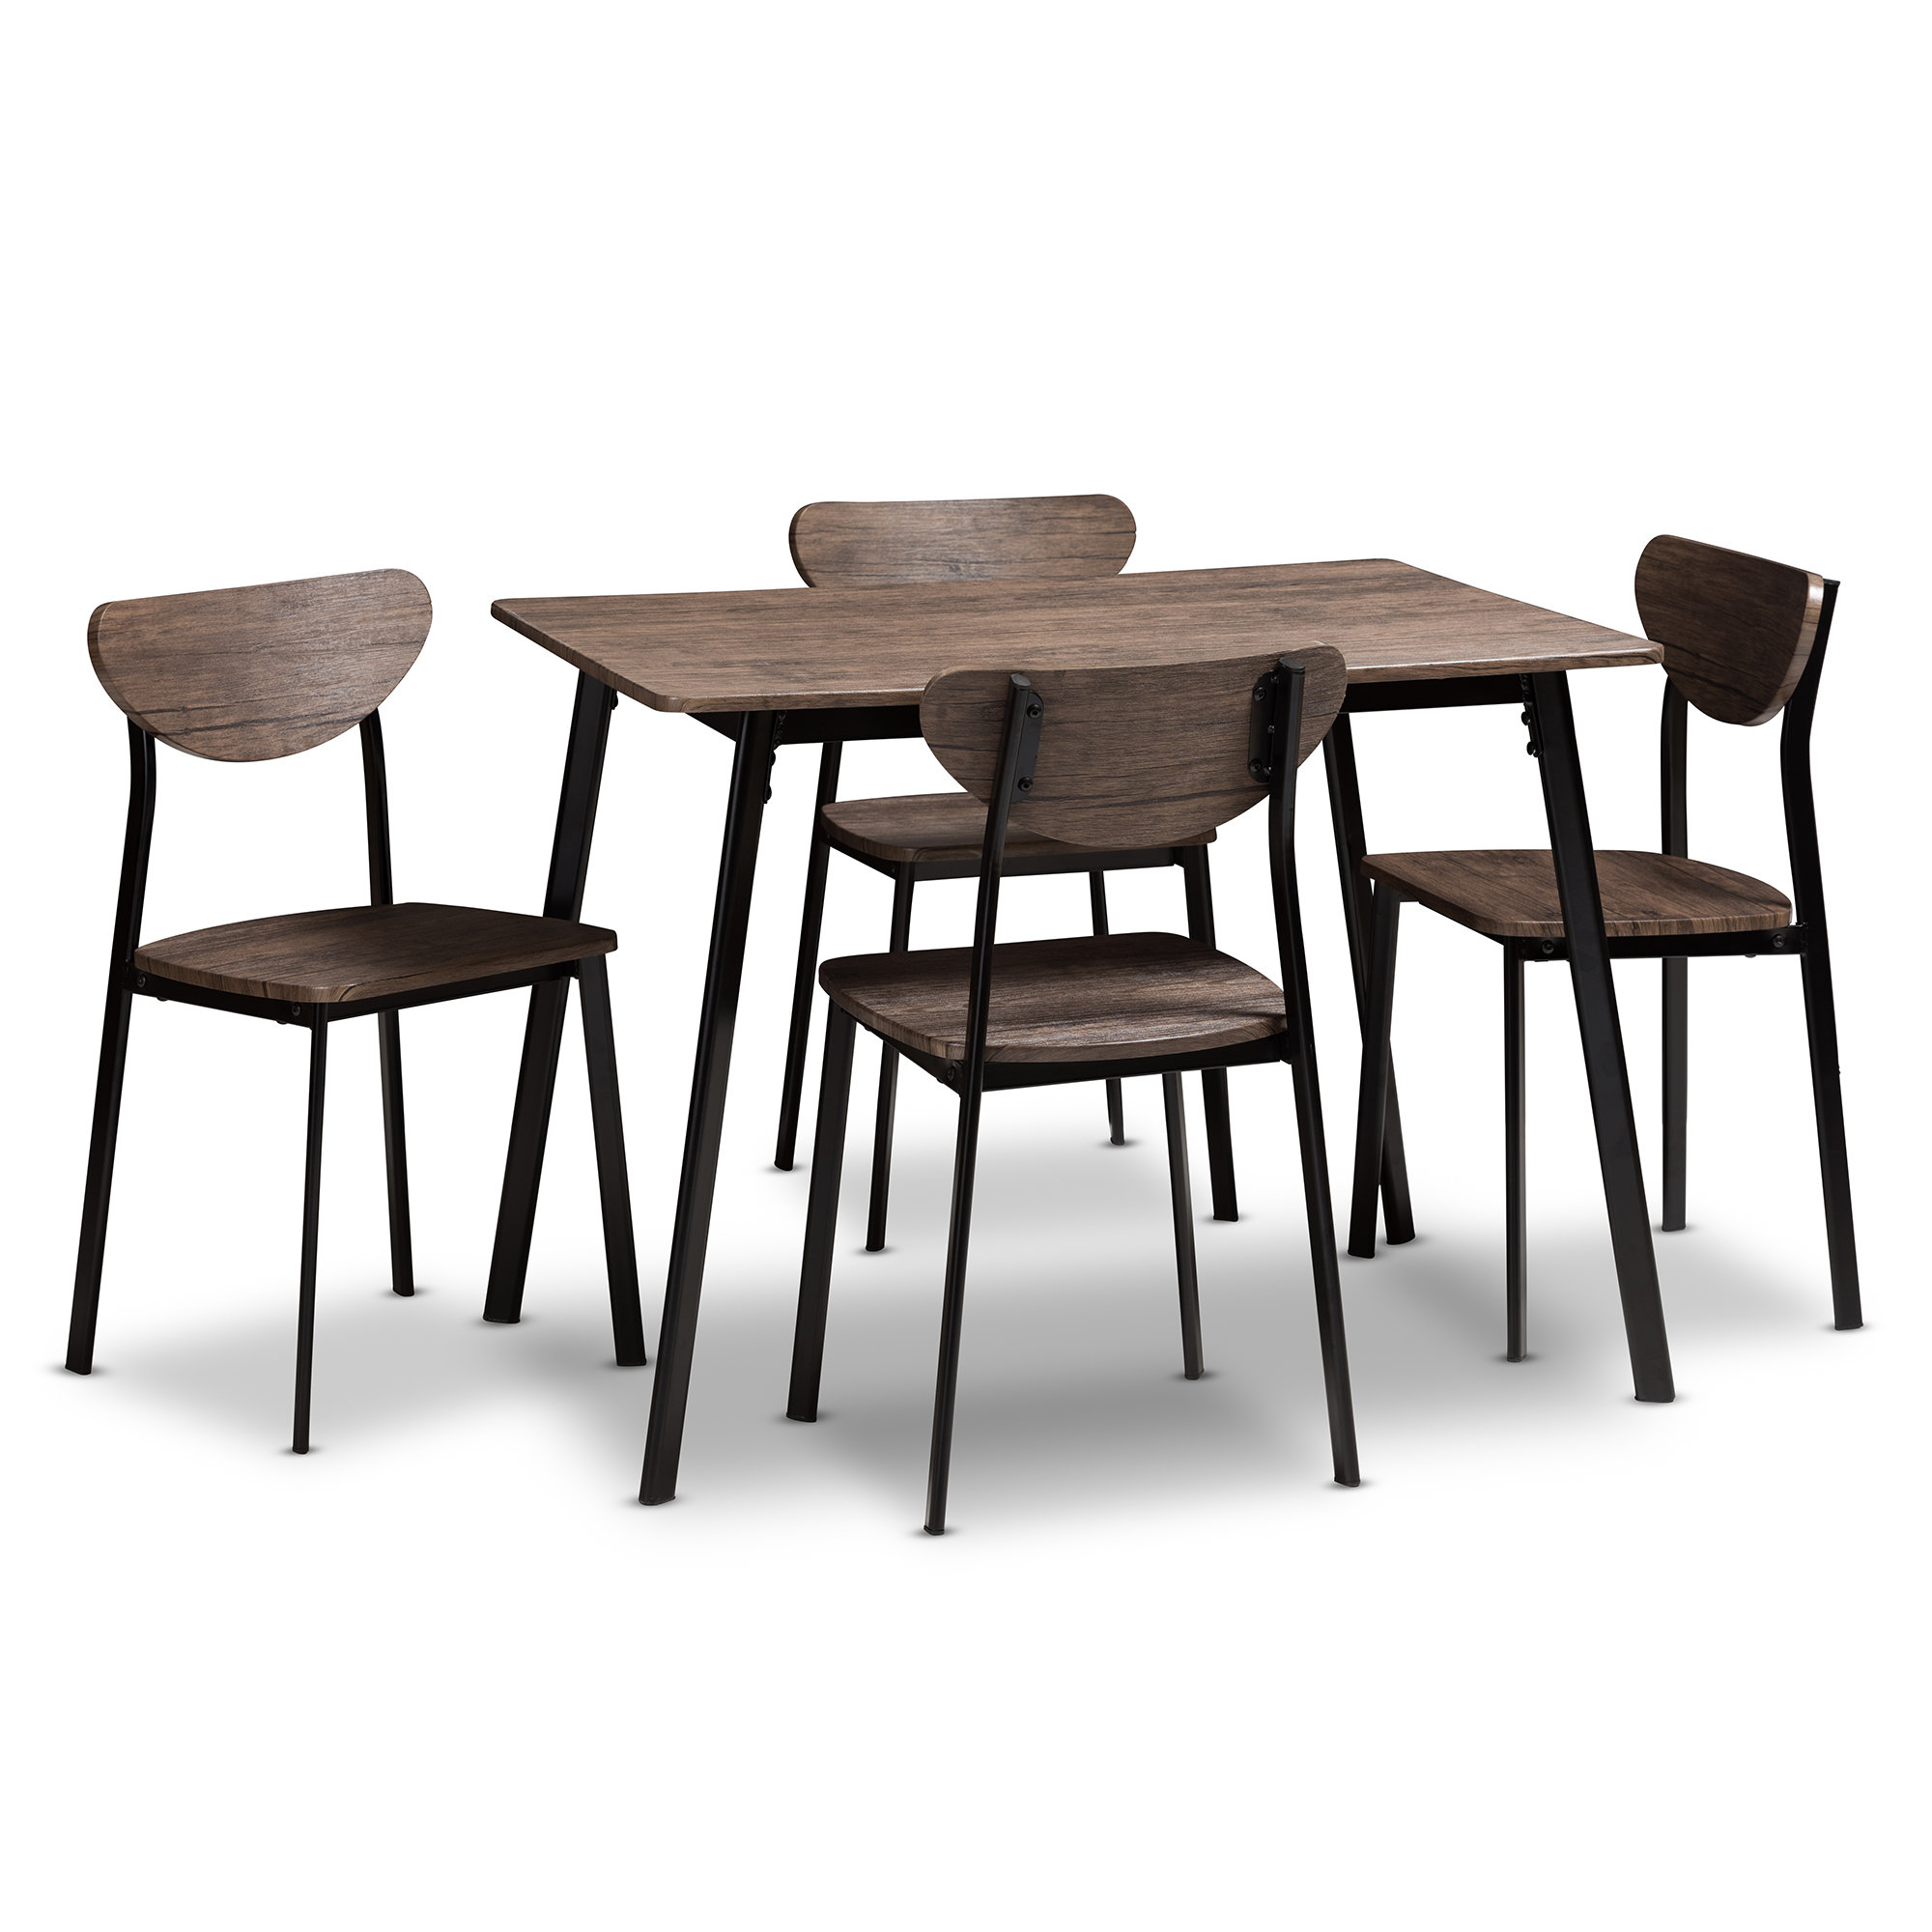 Joss & Main within Most Current Telauges 5 Piece Dining Sets